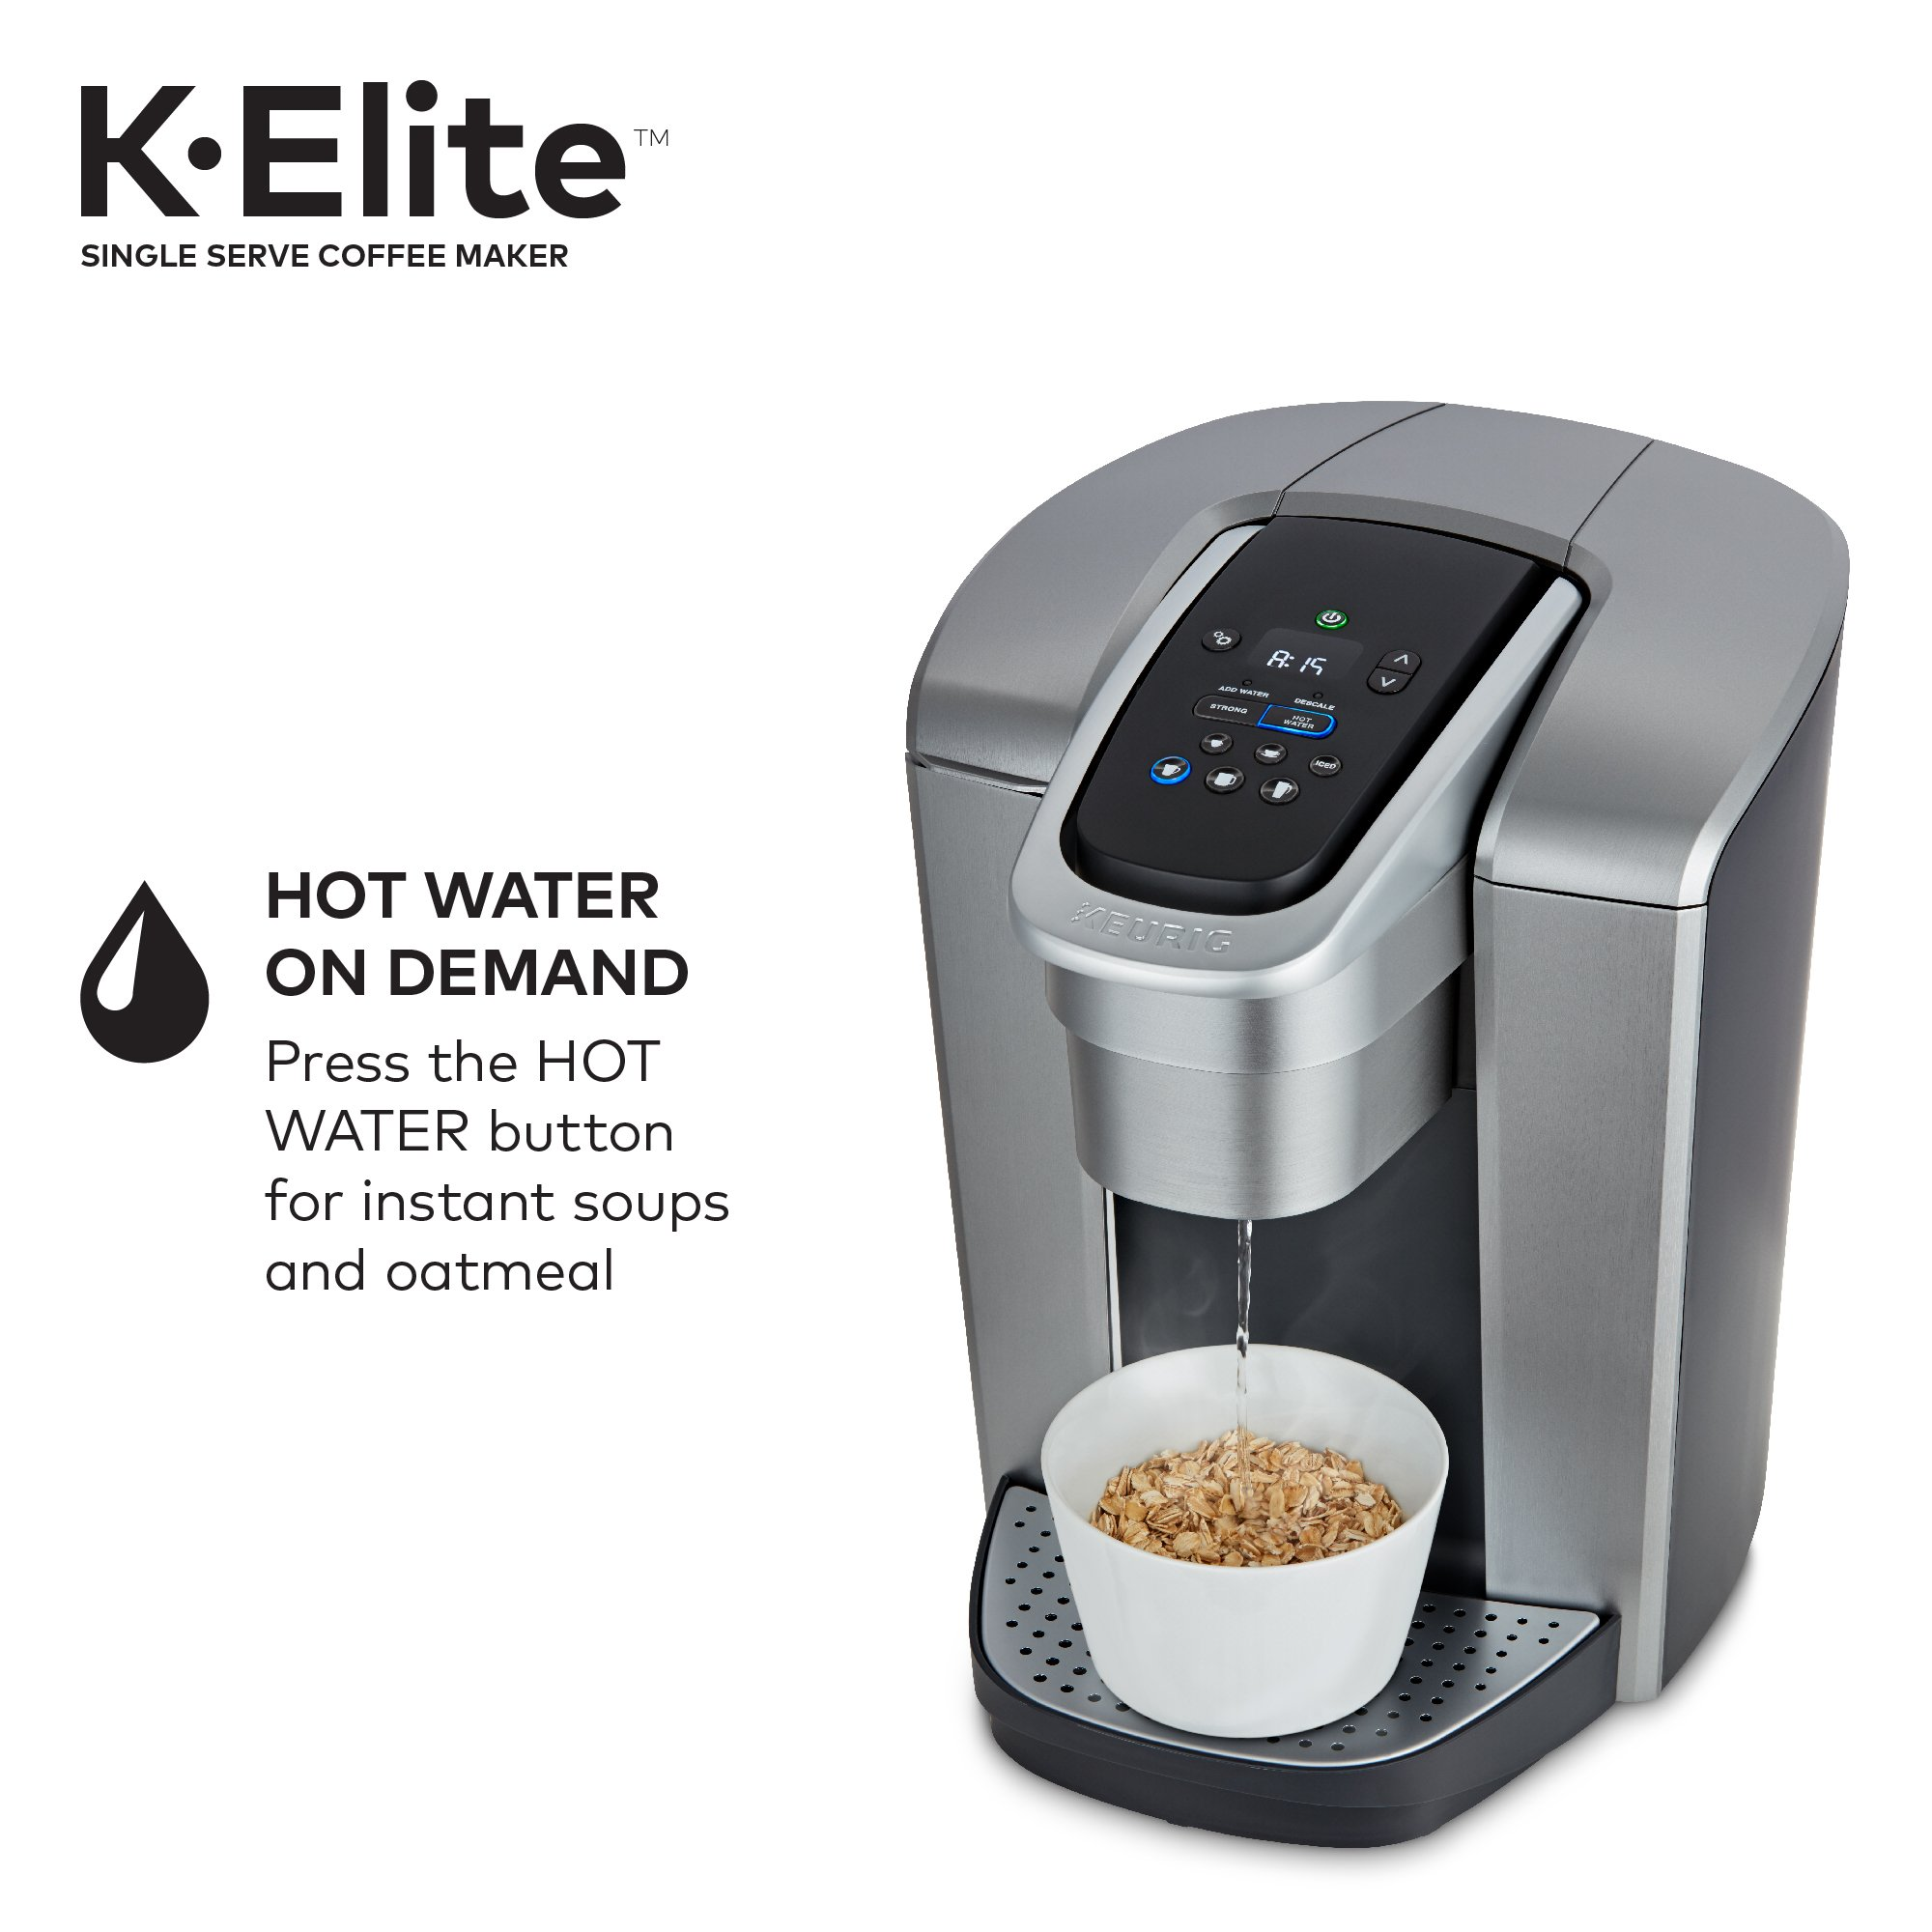 Keurig K-Elite K Single Serve K-Cup Pod Maker, with Strong Temperature Control, Iced Coffee Capability, 12oz Brew Size, Programmable, Brushed Silver by Keurig (Image #4)